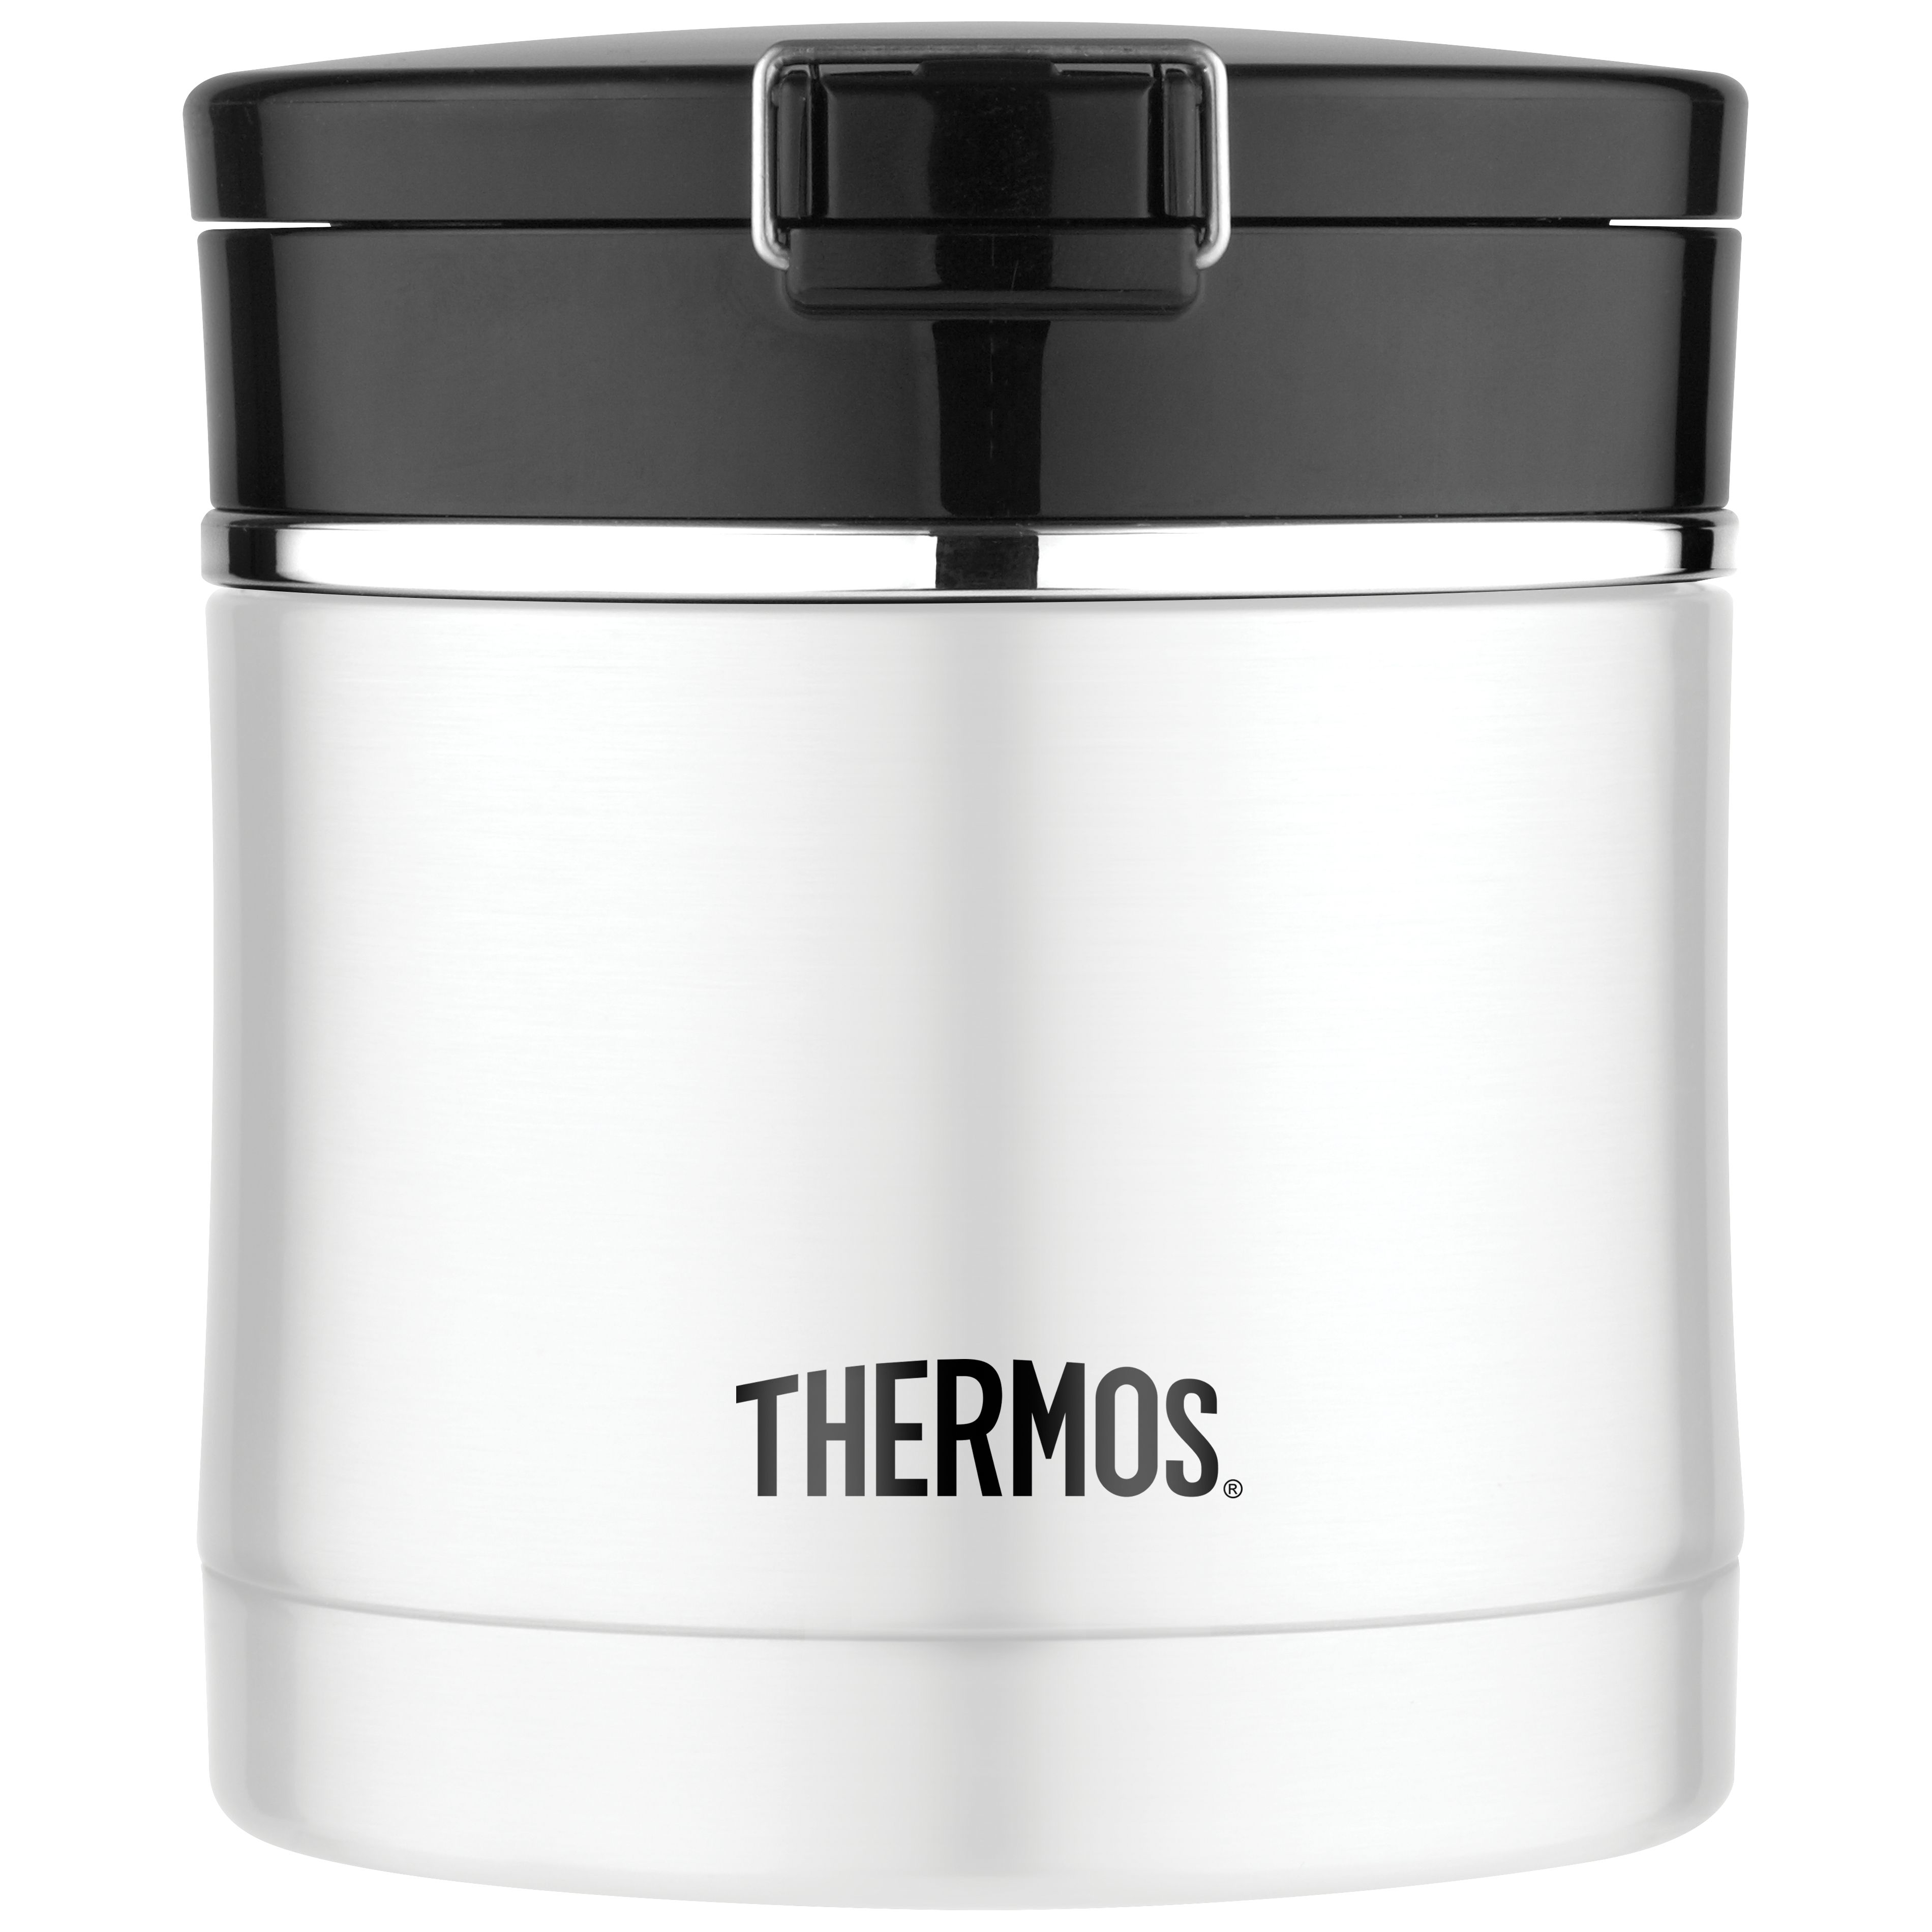 Thermos Sipp Stainless Steel and Black Vacuum Insulated 10 Ounce Flip Top Food Jar